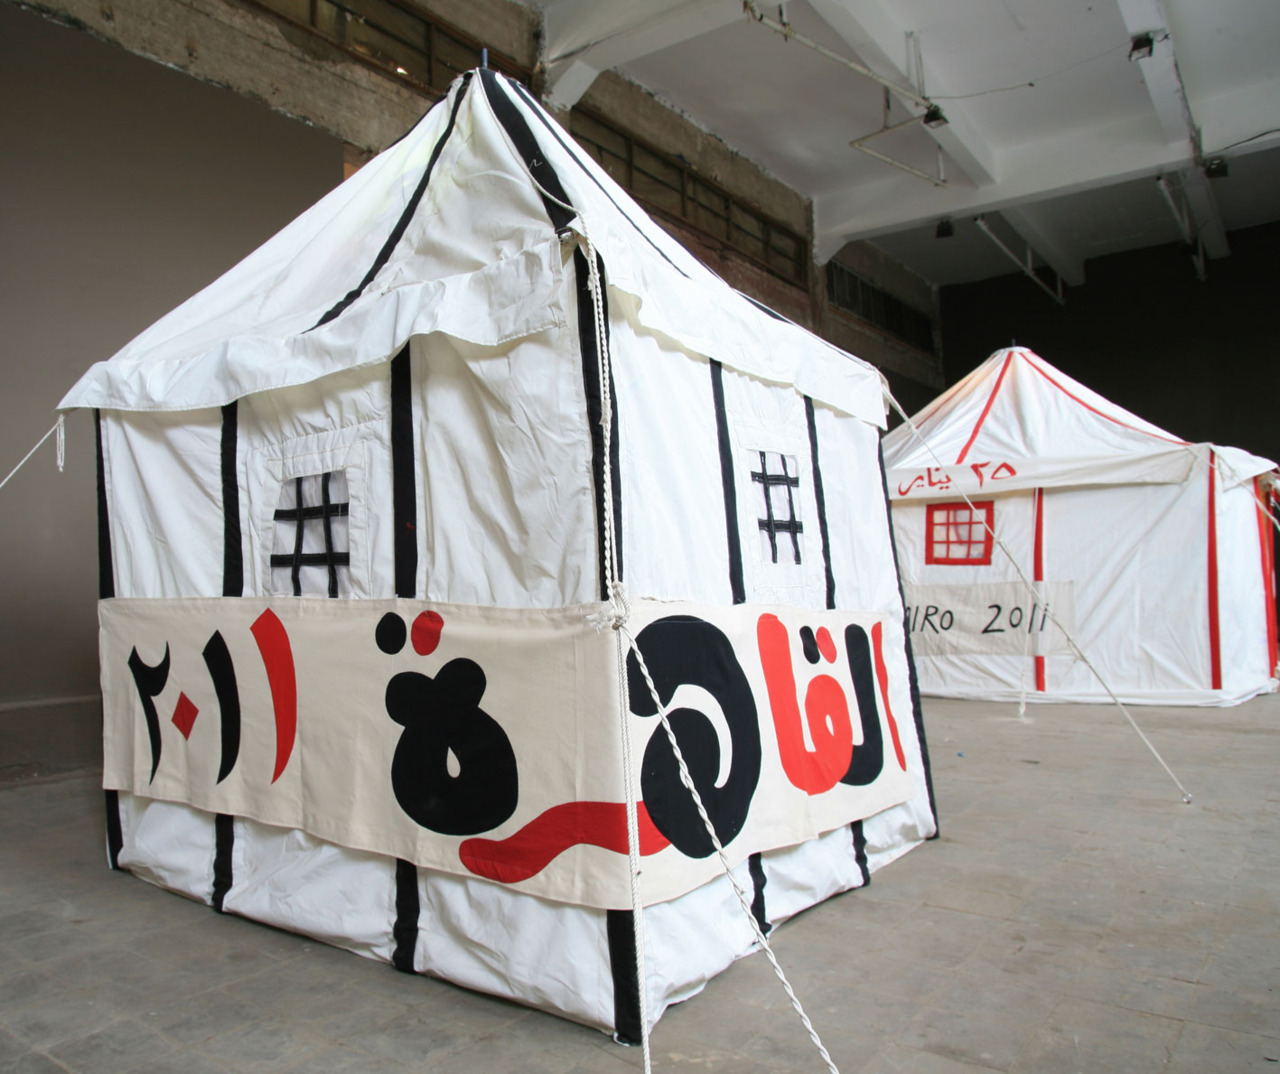 """MFA Art Practice faculty member Susan Hefuna will be at  Rose Issa Projects  this evening to discuss  """"I LOVE EGYPT/ SPEAK OUT,""""  her tent installation for the Edgware Road Project, in collaboration with the Serpentine Gallery."""